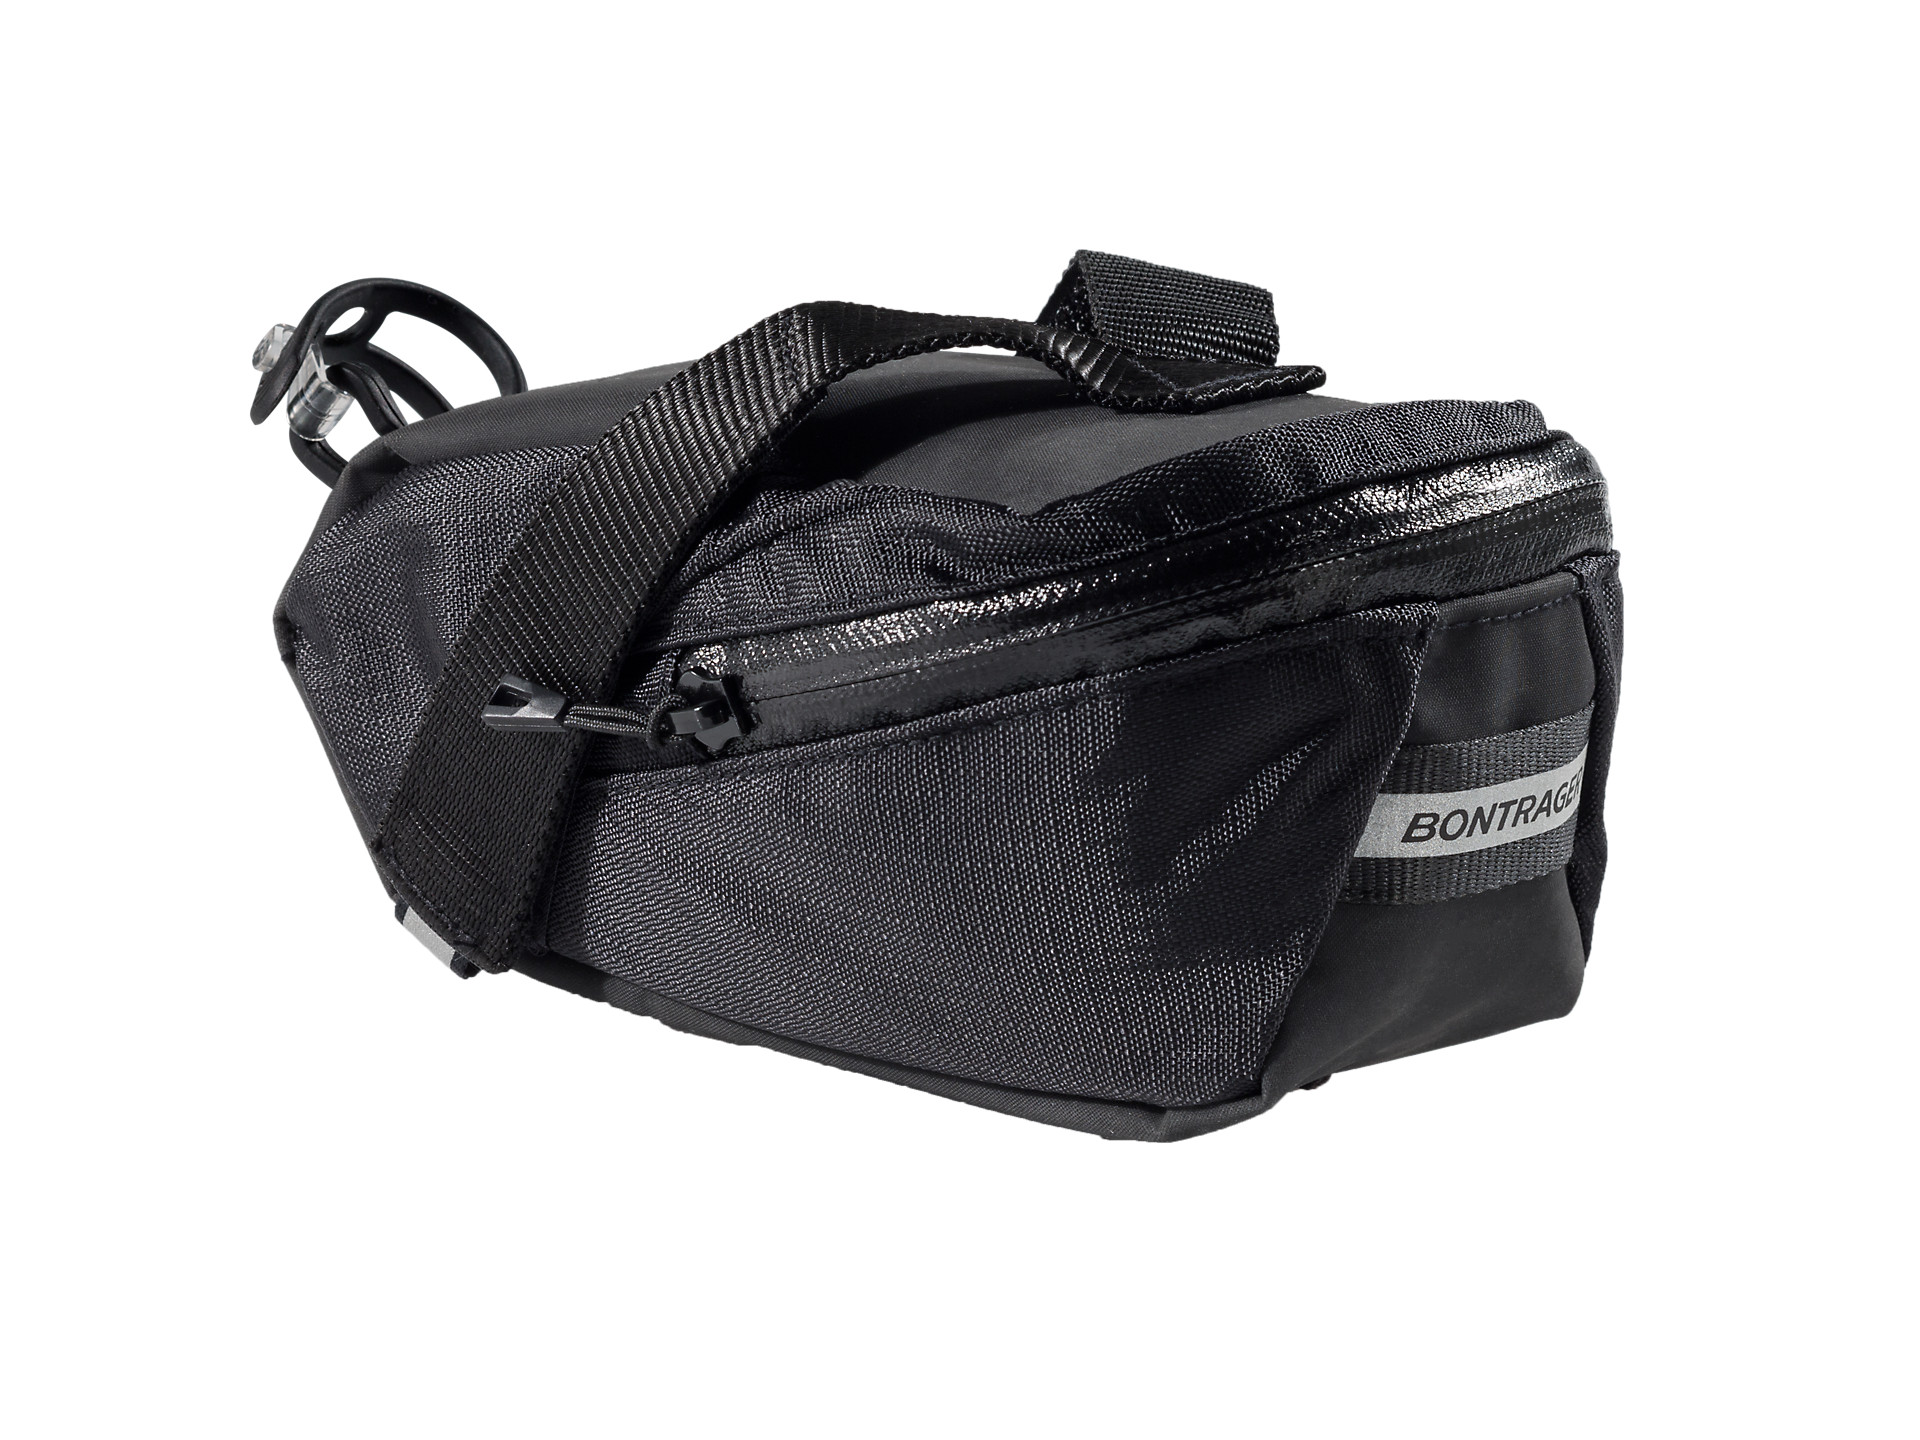 EIGO SADDLE BAG SEAT PACK SEAT BAG TOOL BAG WITH QUICK RELEASE FITTING BLACK//GREY